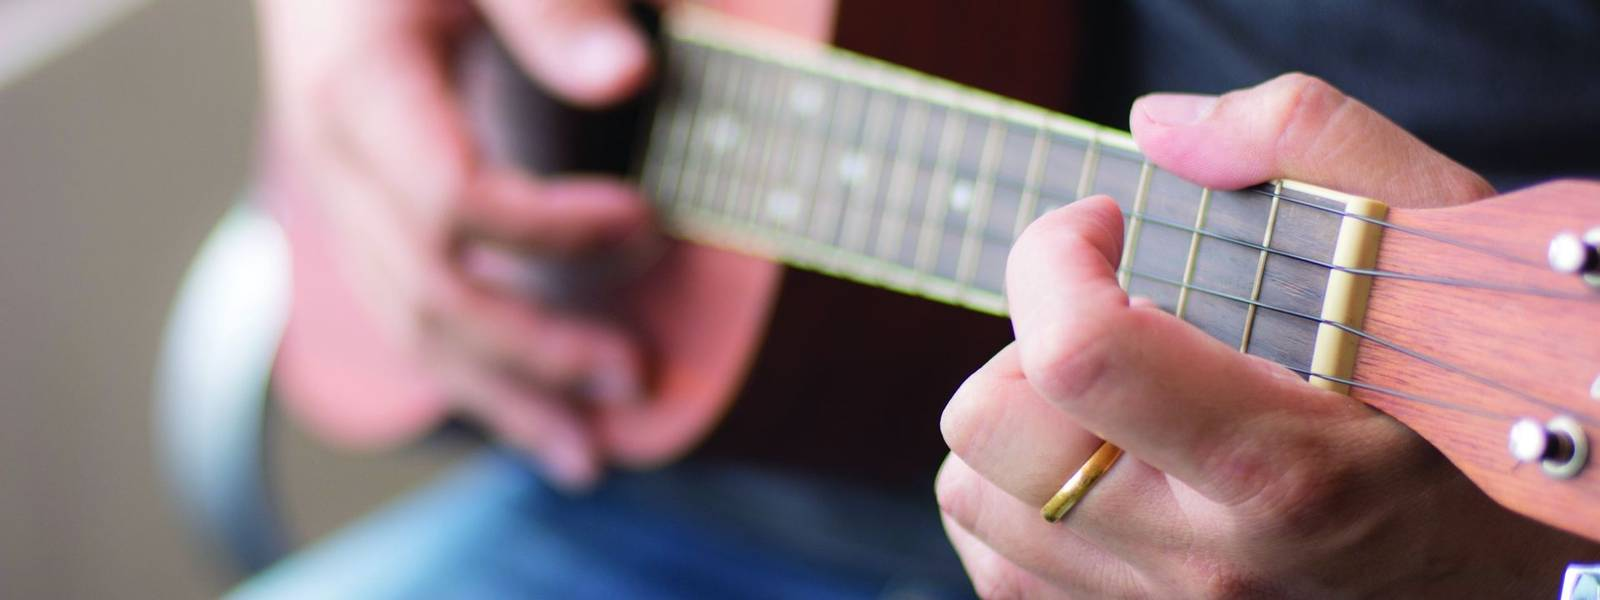 Man playing Ukelele with selective focus